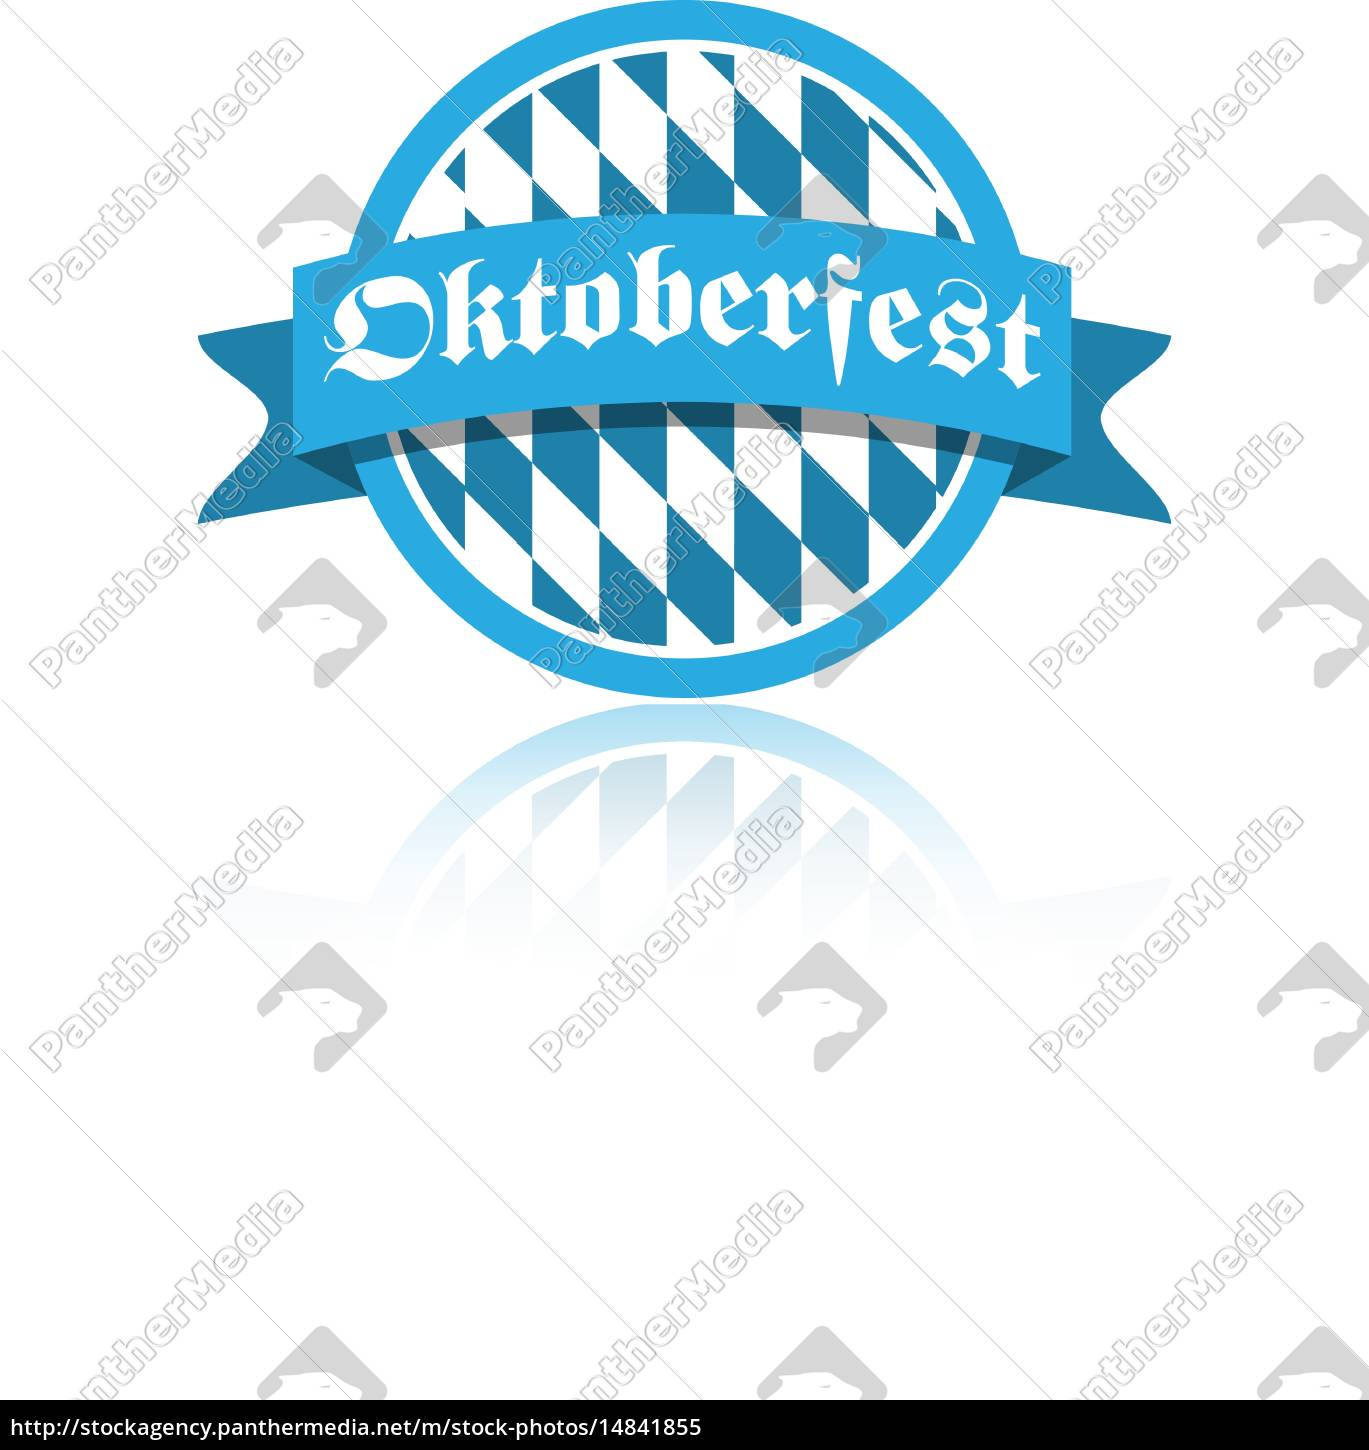 oktoberfest, vektor, illustration, button - 14841855